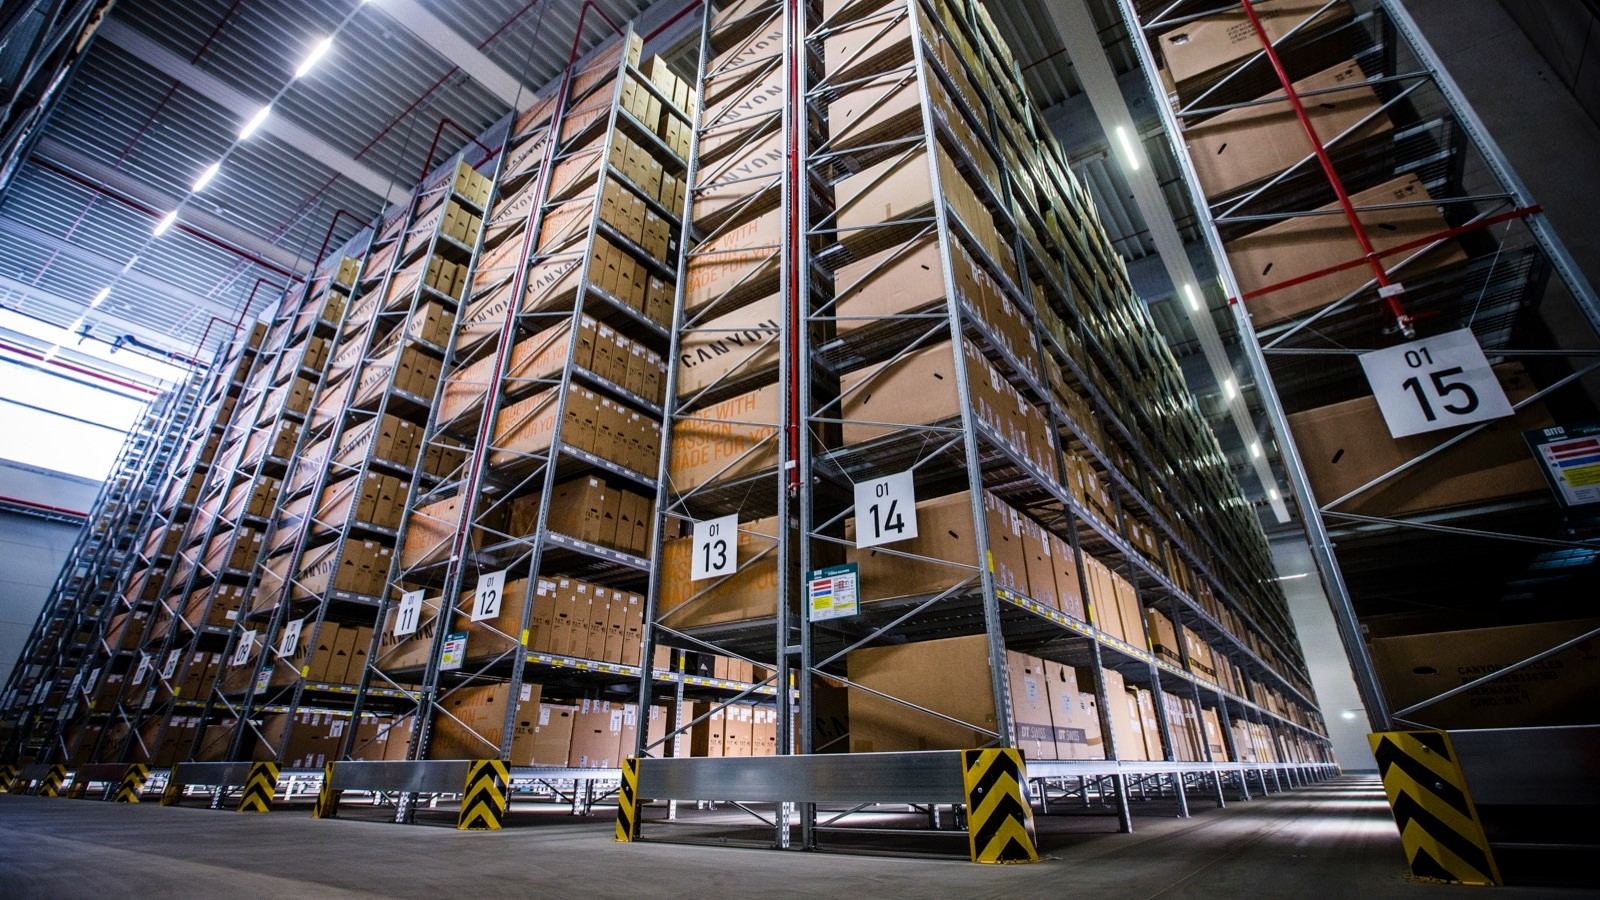 The warehouse is huge – it can store 14,000 bikes at any one time